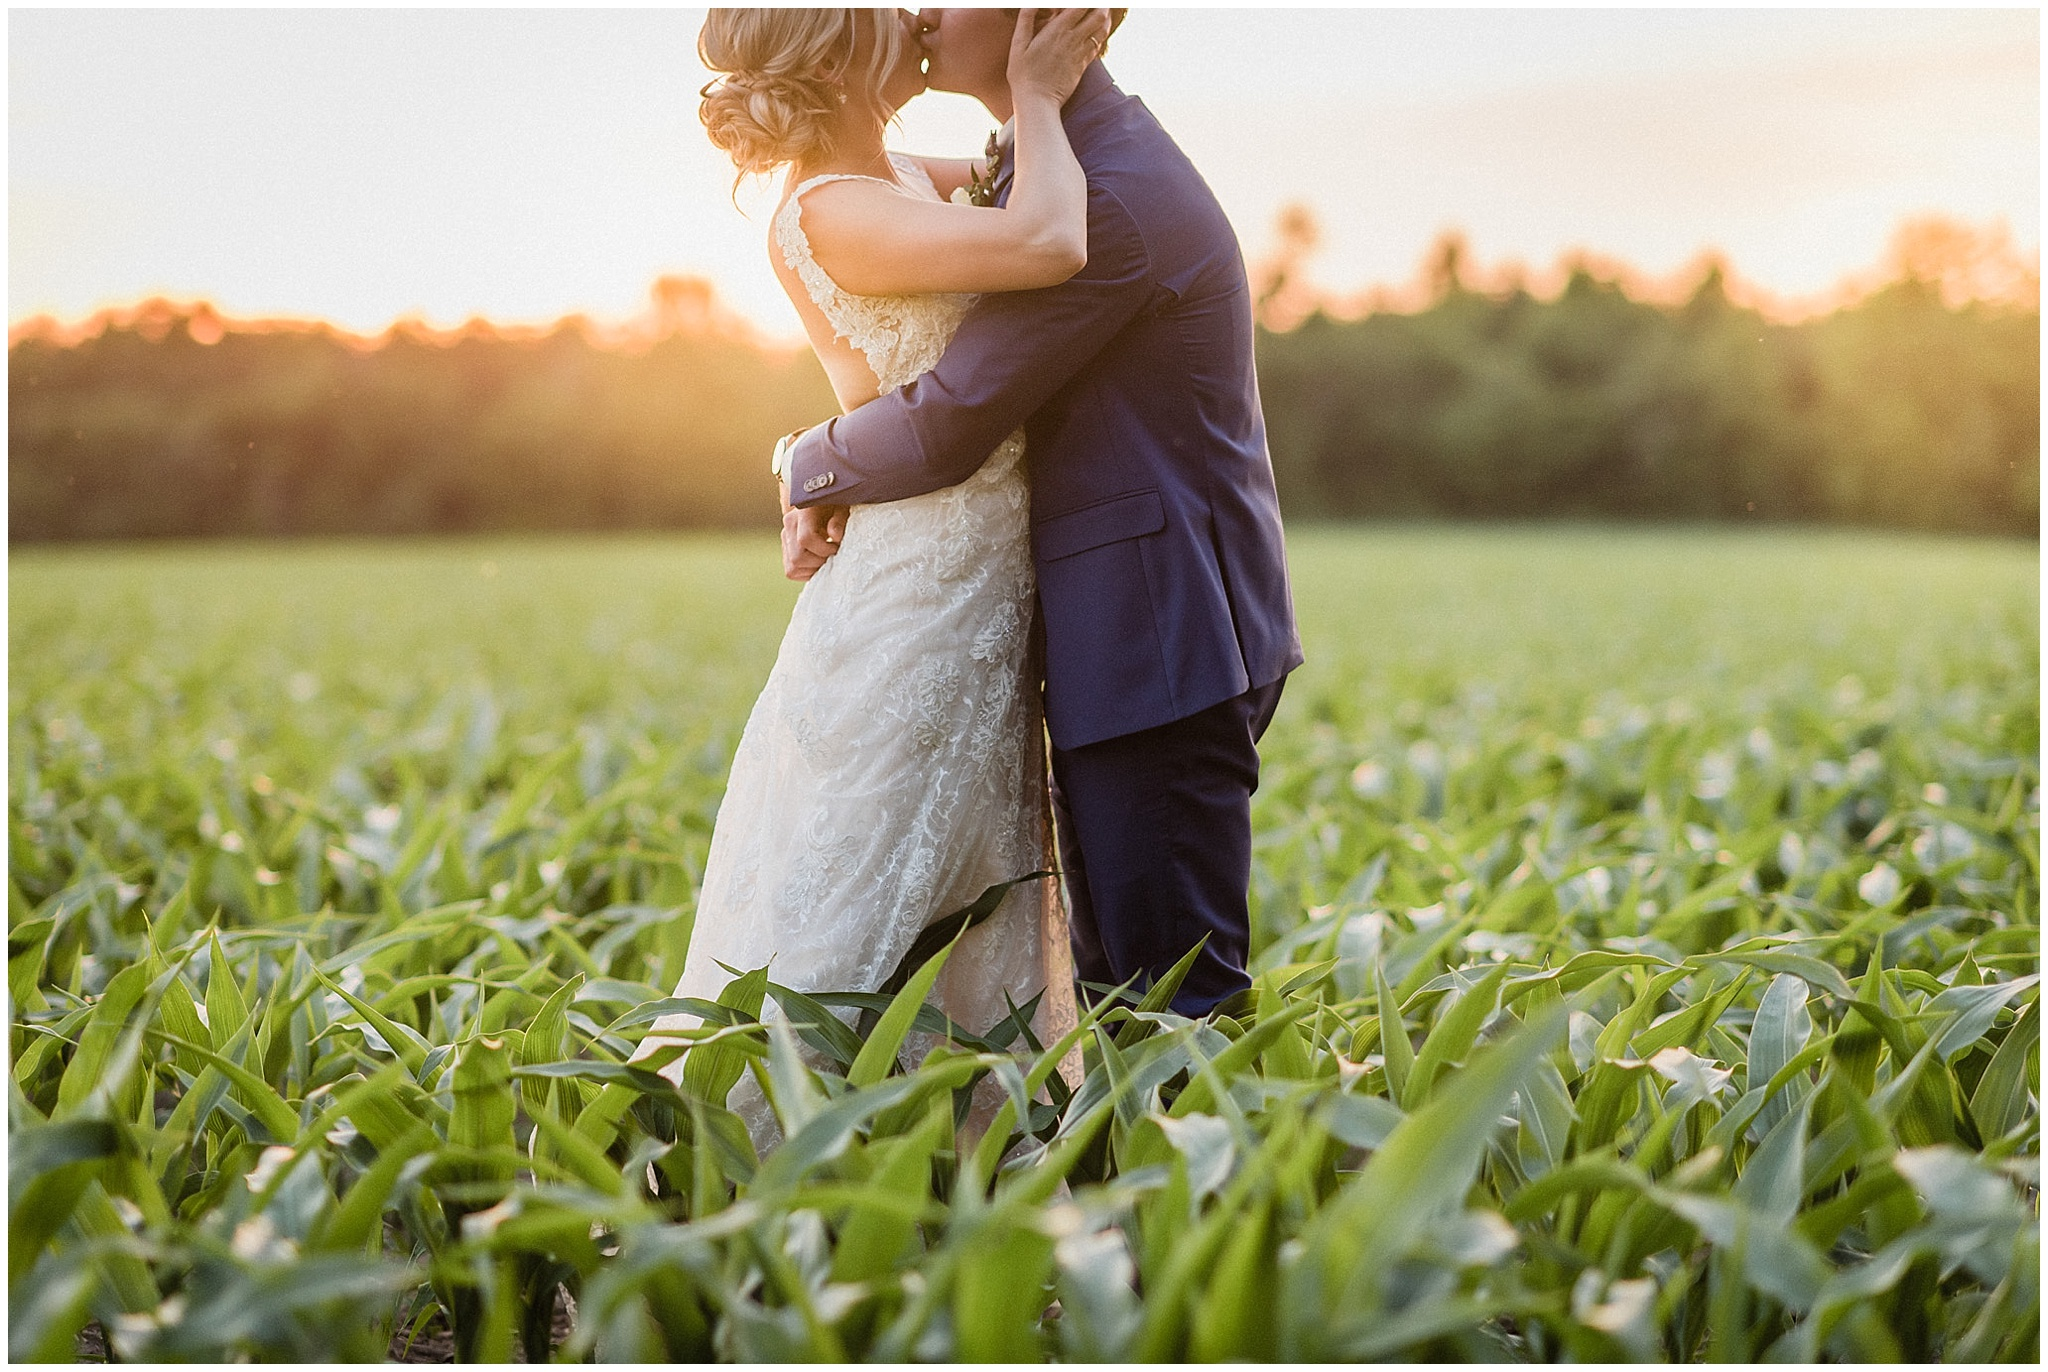 Beautiful sunset portraits of the bride and groom | Tent wedding on family farm in Guelph, Ontario by Jenn Kavanagh Photography